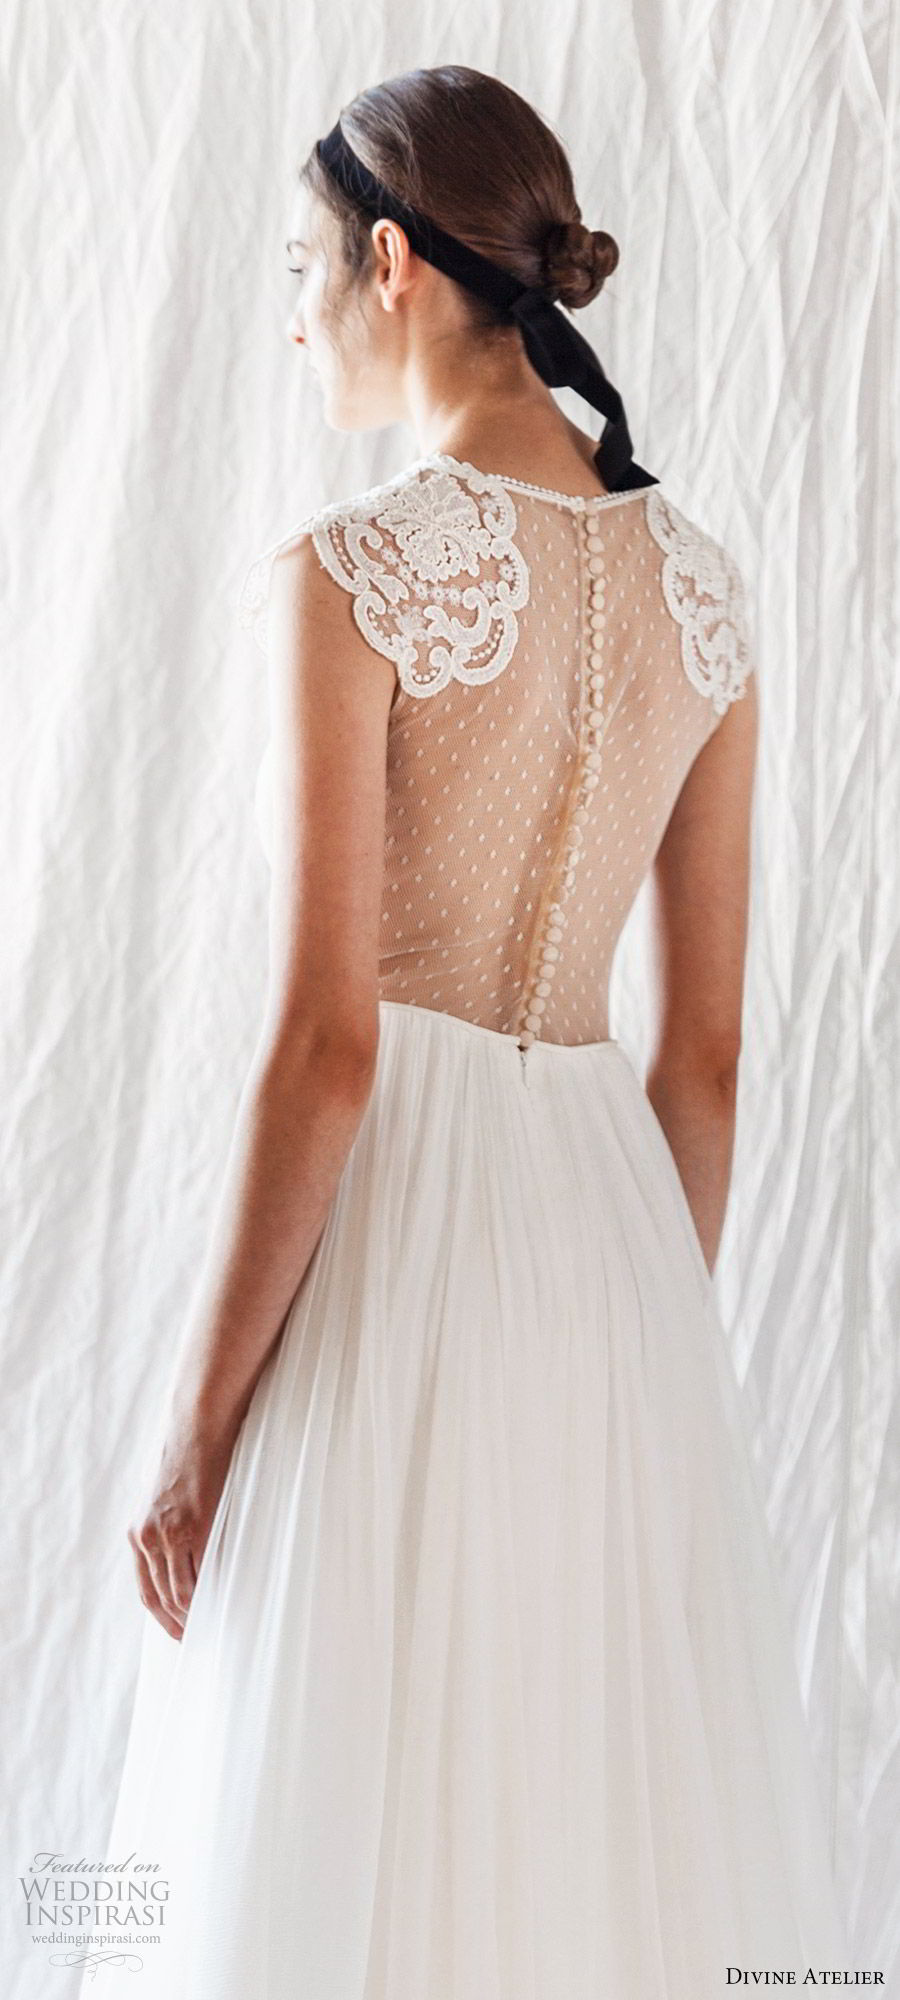 divine atelier 2019 bridal cap sleeves jewel neck lace bodice soft aline wedding dress (10) sheer bodice sweep train boho romantic bv